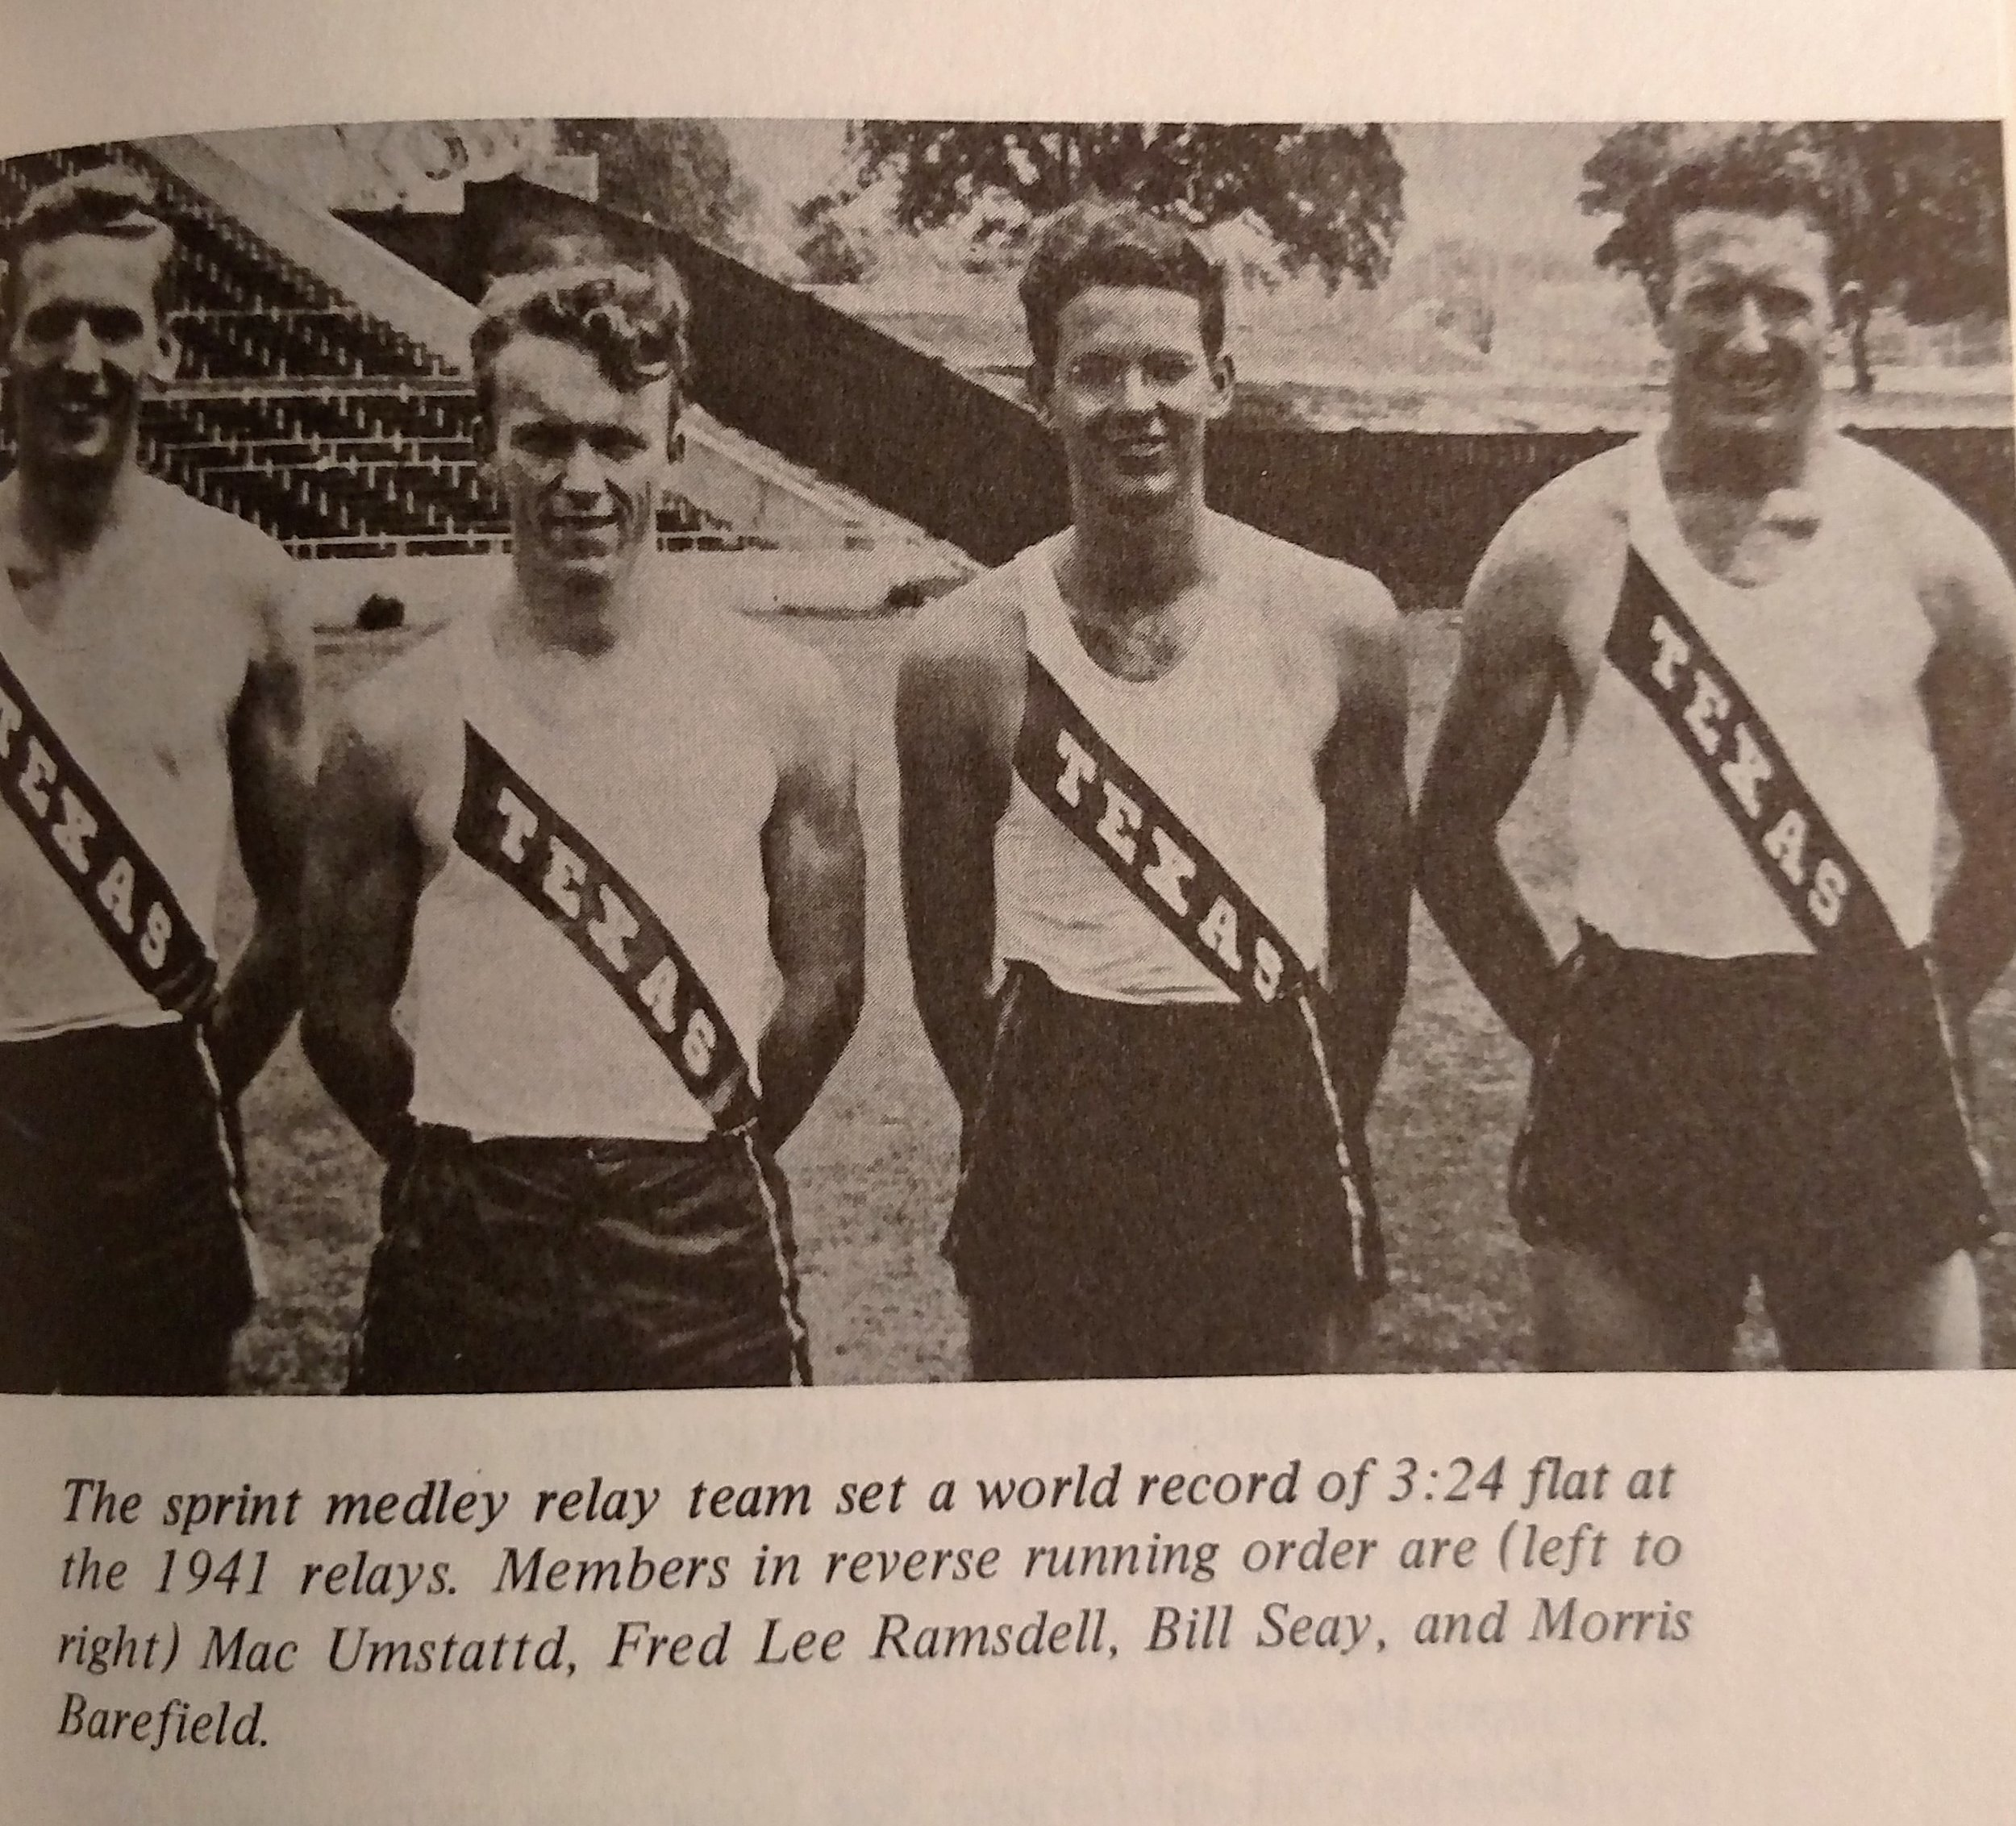 Mac Umstattd, Fred Ramsdell, Bill Seay, and Morris Barefield. -